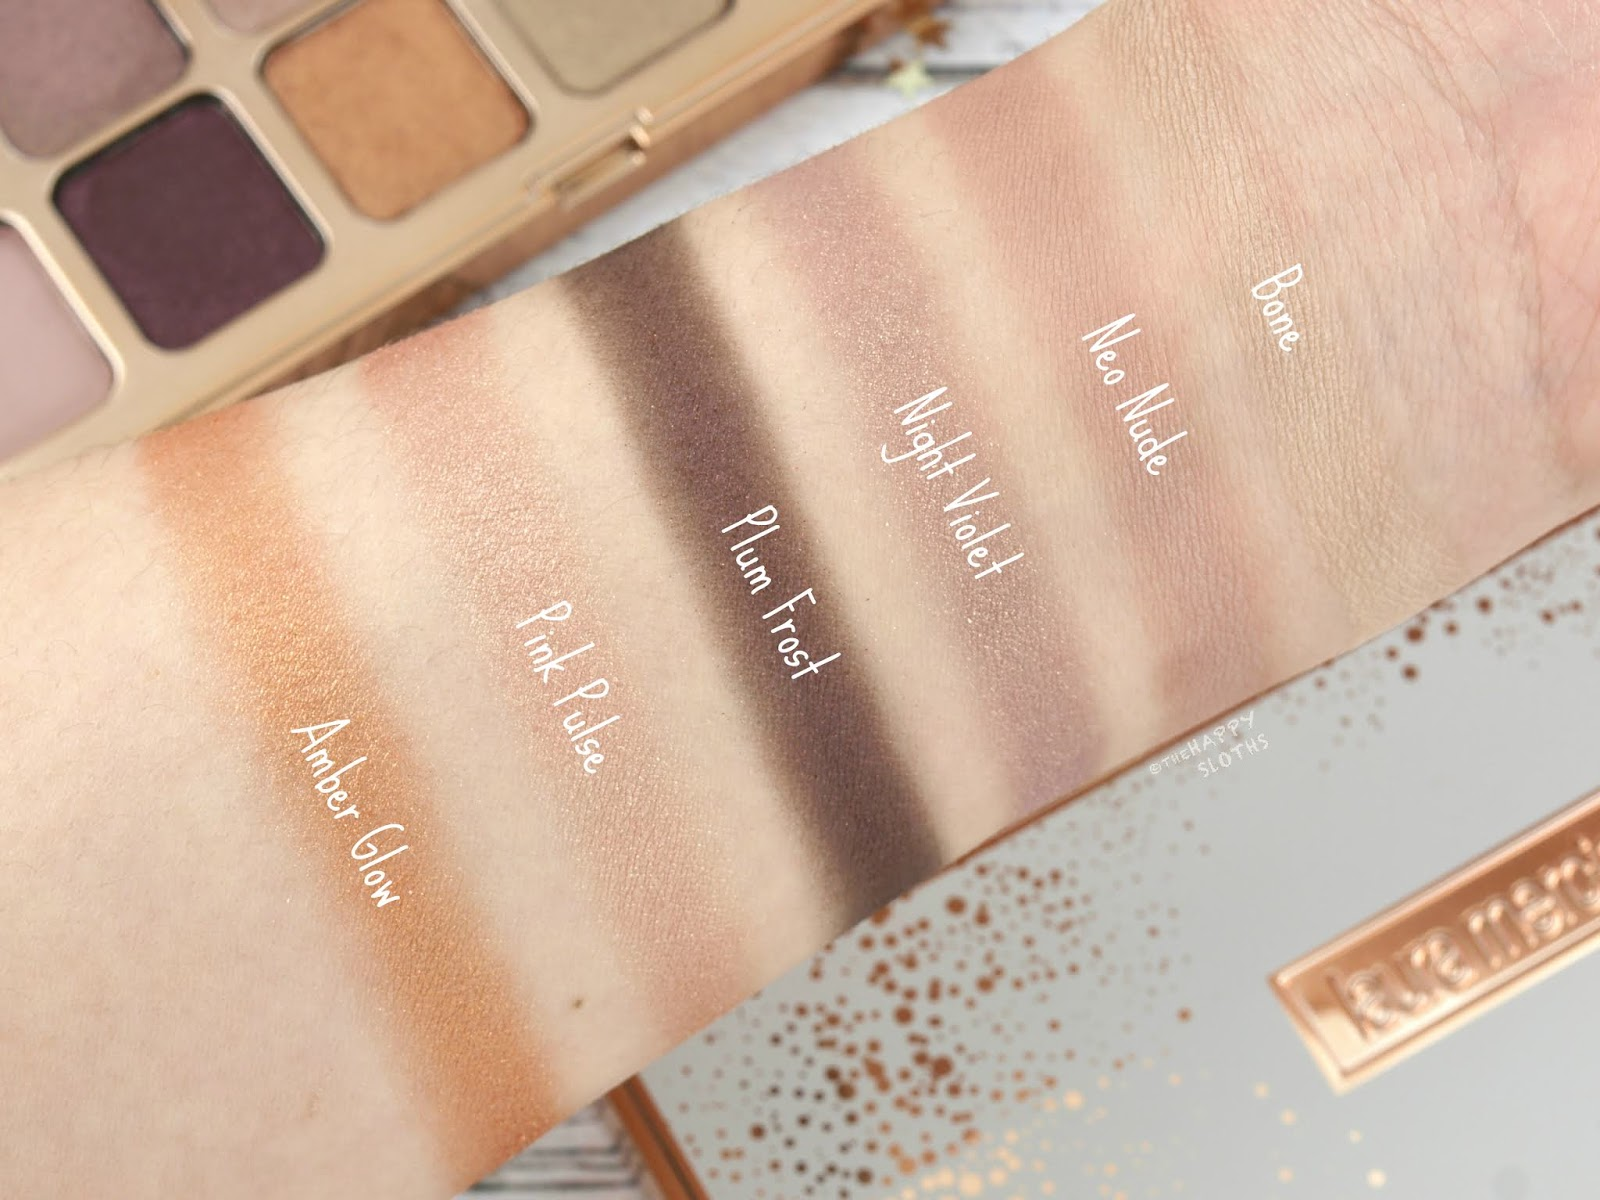 Laura Mercier | Holiday 2018 Nights Out Eyeshadow Palette: Review and Swatches